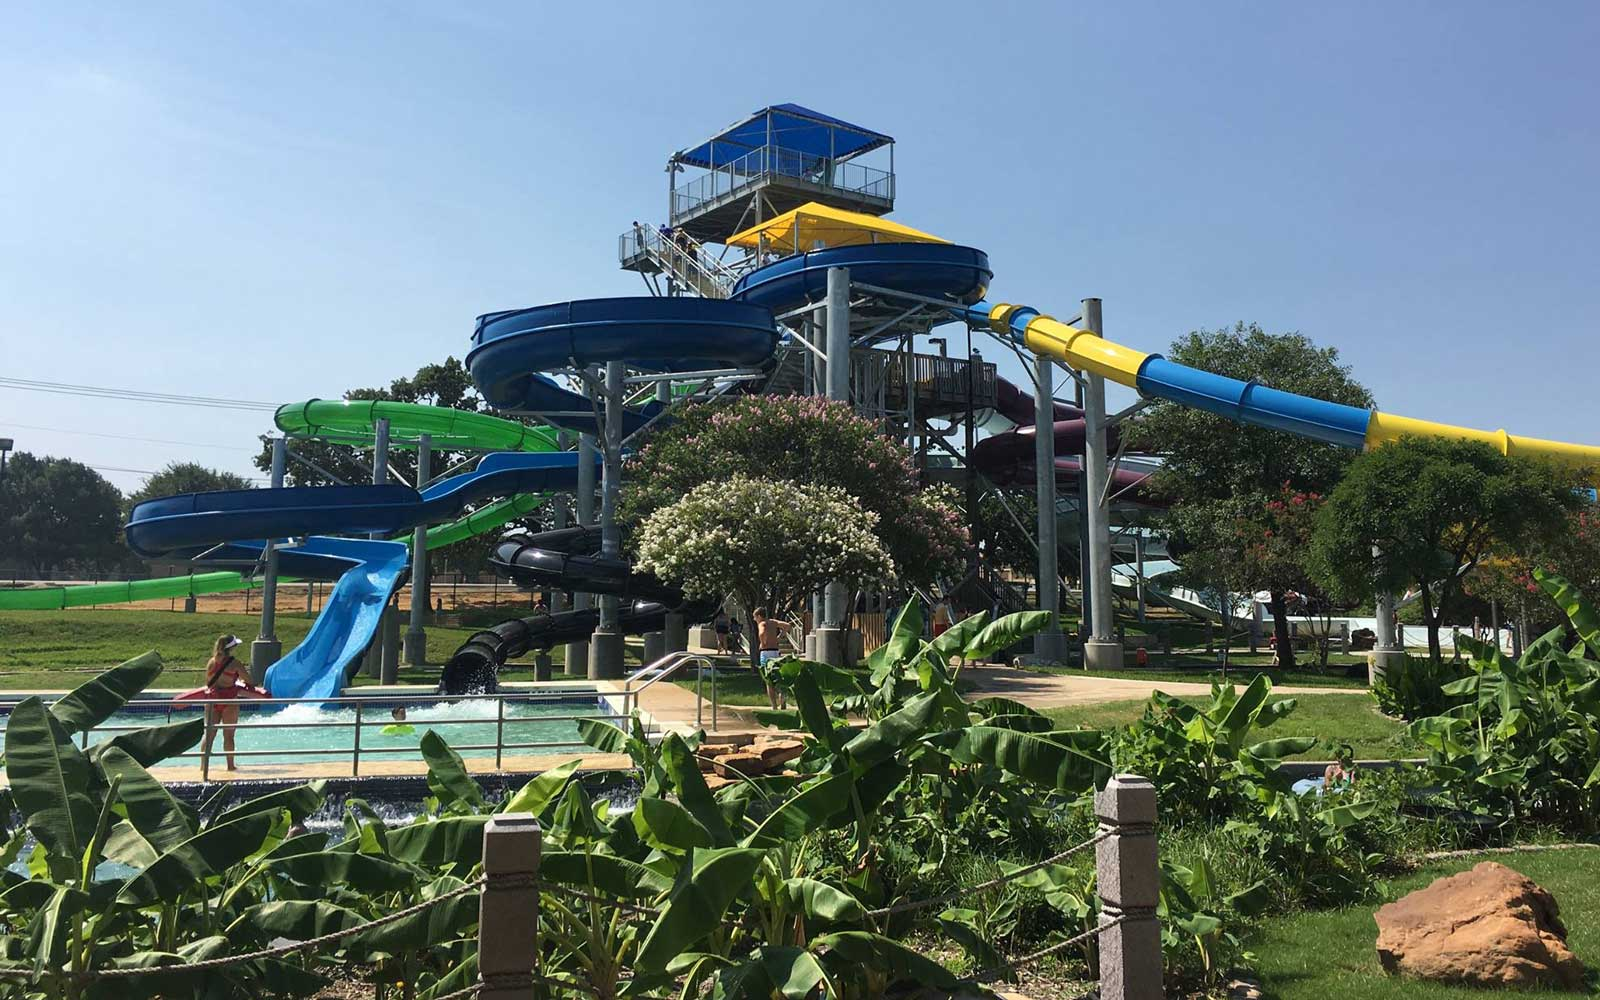 NRH20 Family Water Park — North Richland Hills, Texas